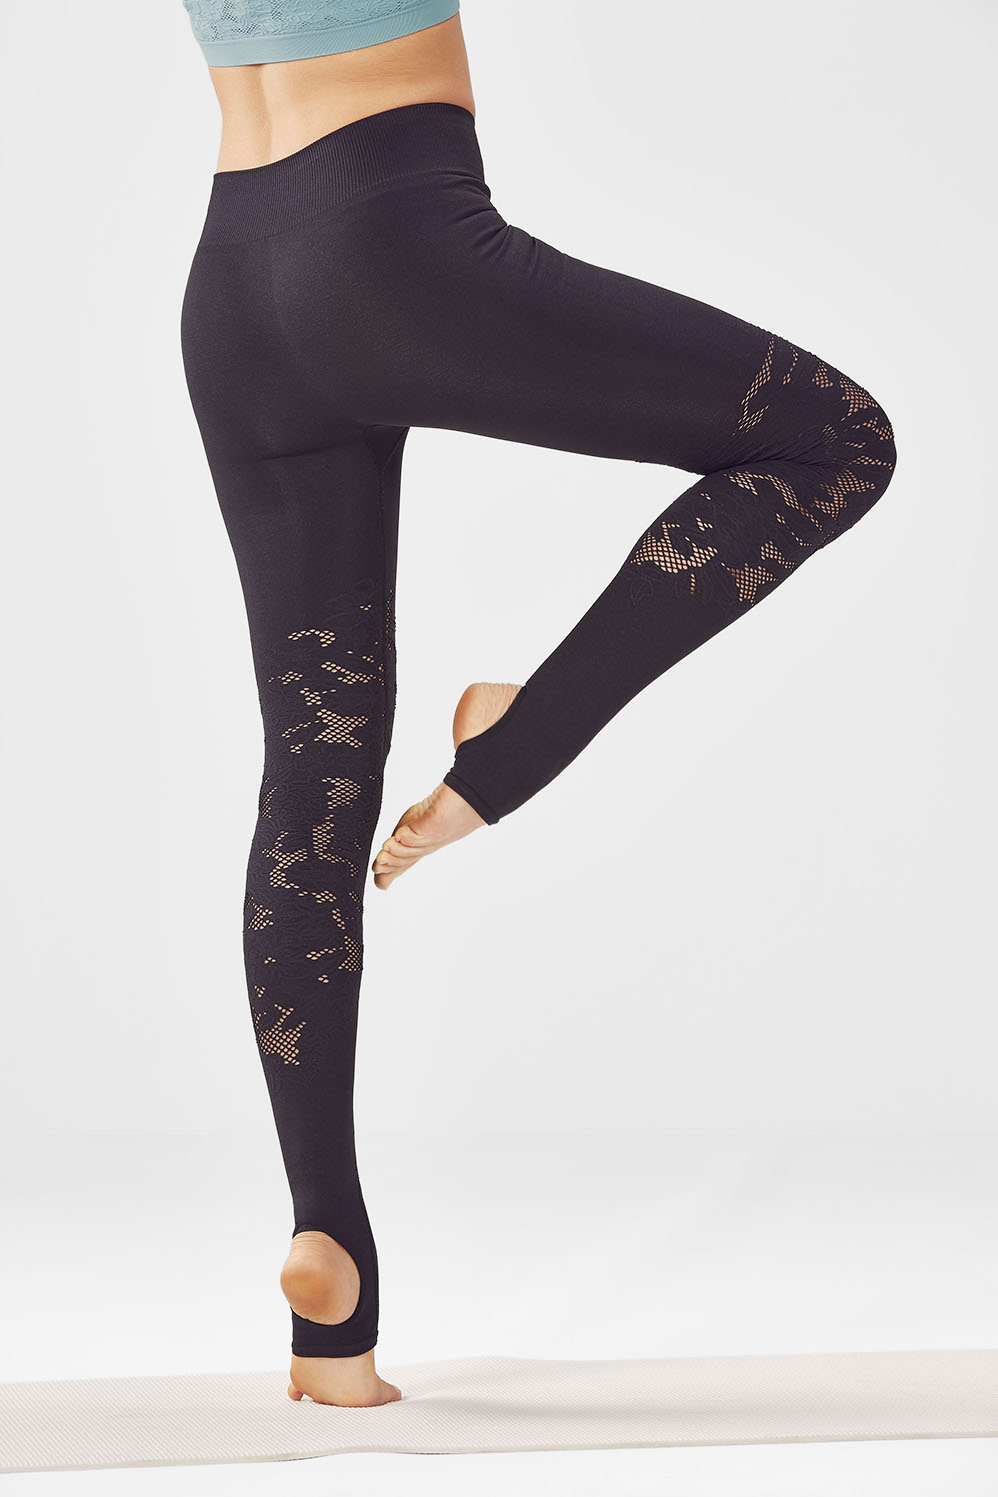 Fabletics Tight Seamless Statement Legging Womens Black Size L